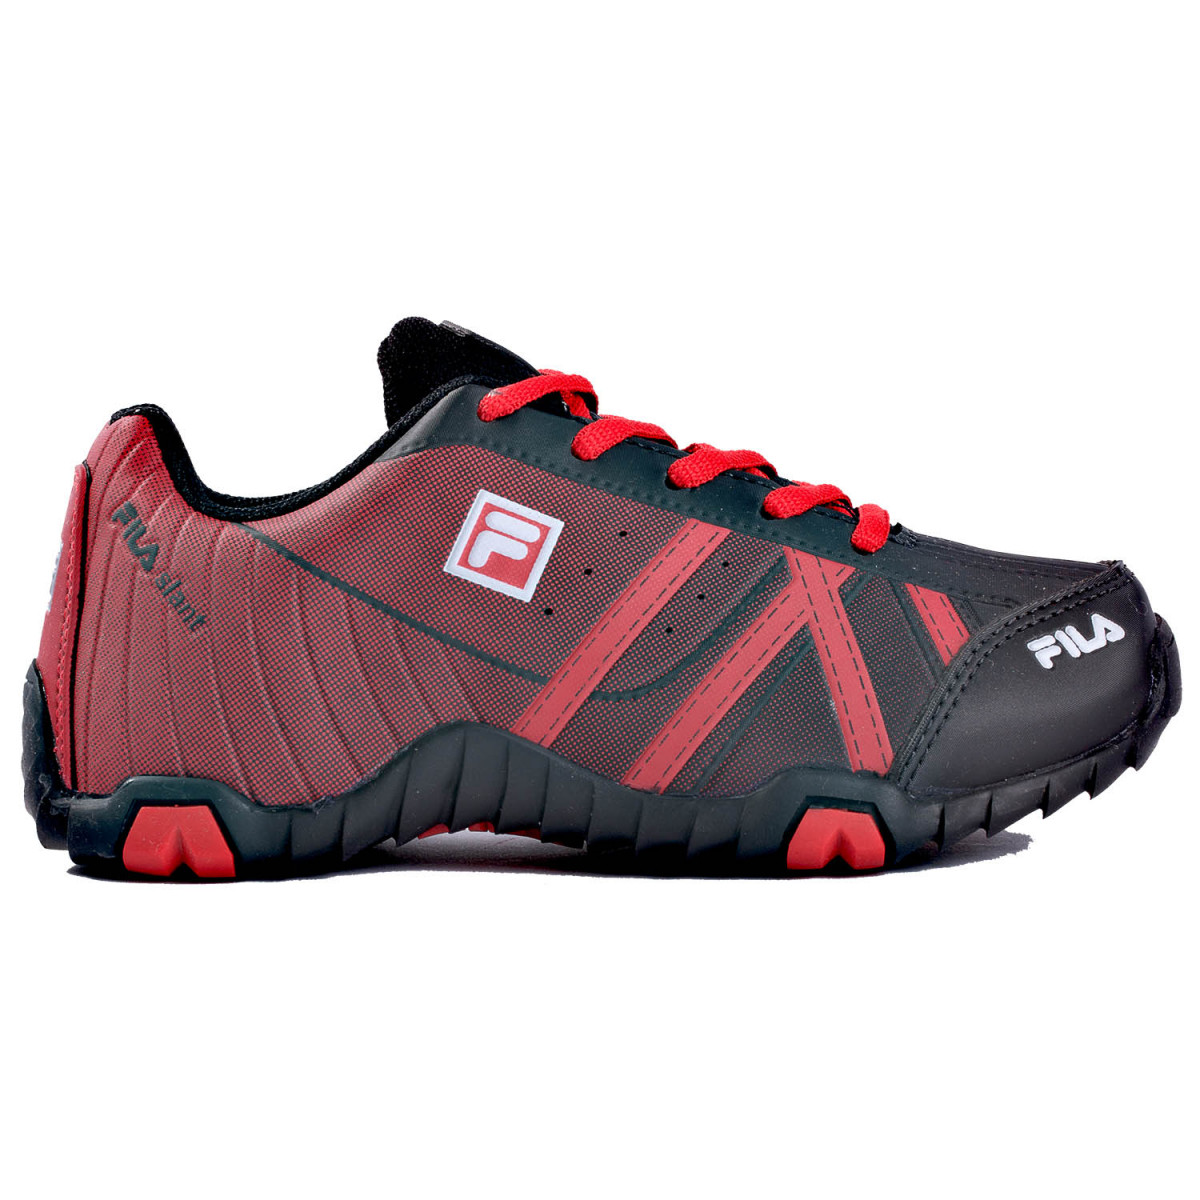 Zapatillas Fila Slant Summer Kids